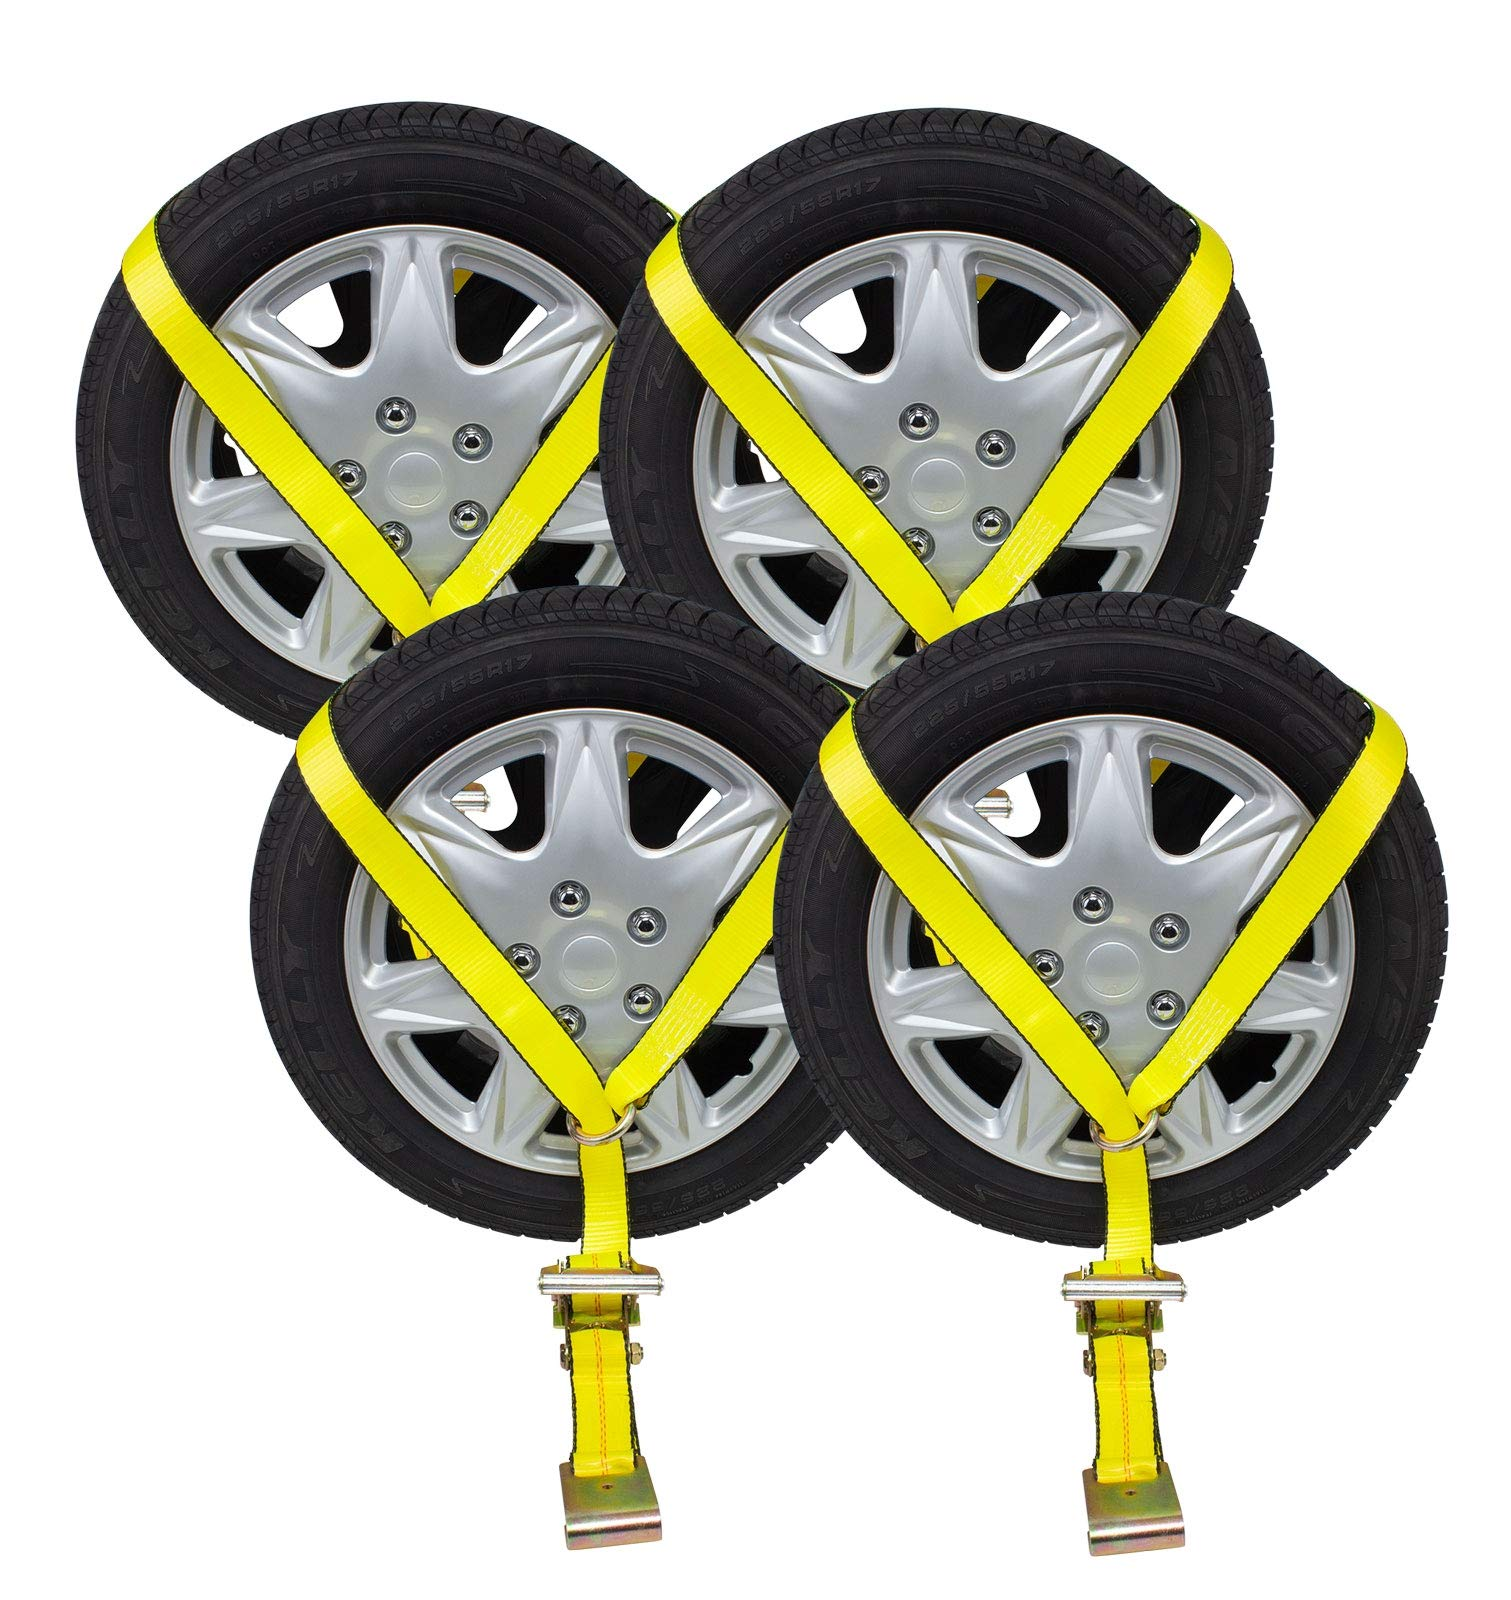 Mytee Products (4 Pack) 2'' x10' Ratchet Wheel Net Lasso Strap Auto Hauling with Flat Hook Ratchet Strap ((4 - Pack) 2'' x14' Single Ratchets & Flat Hook) by Mytee Products